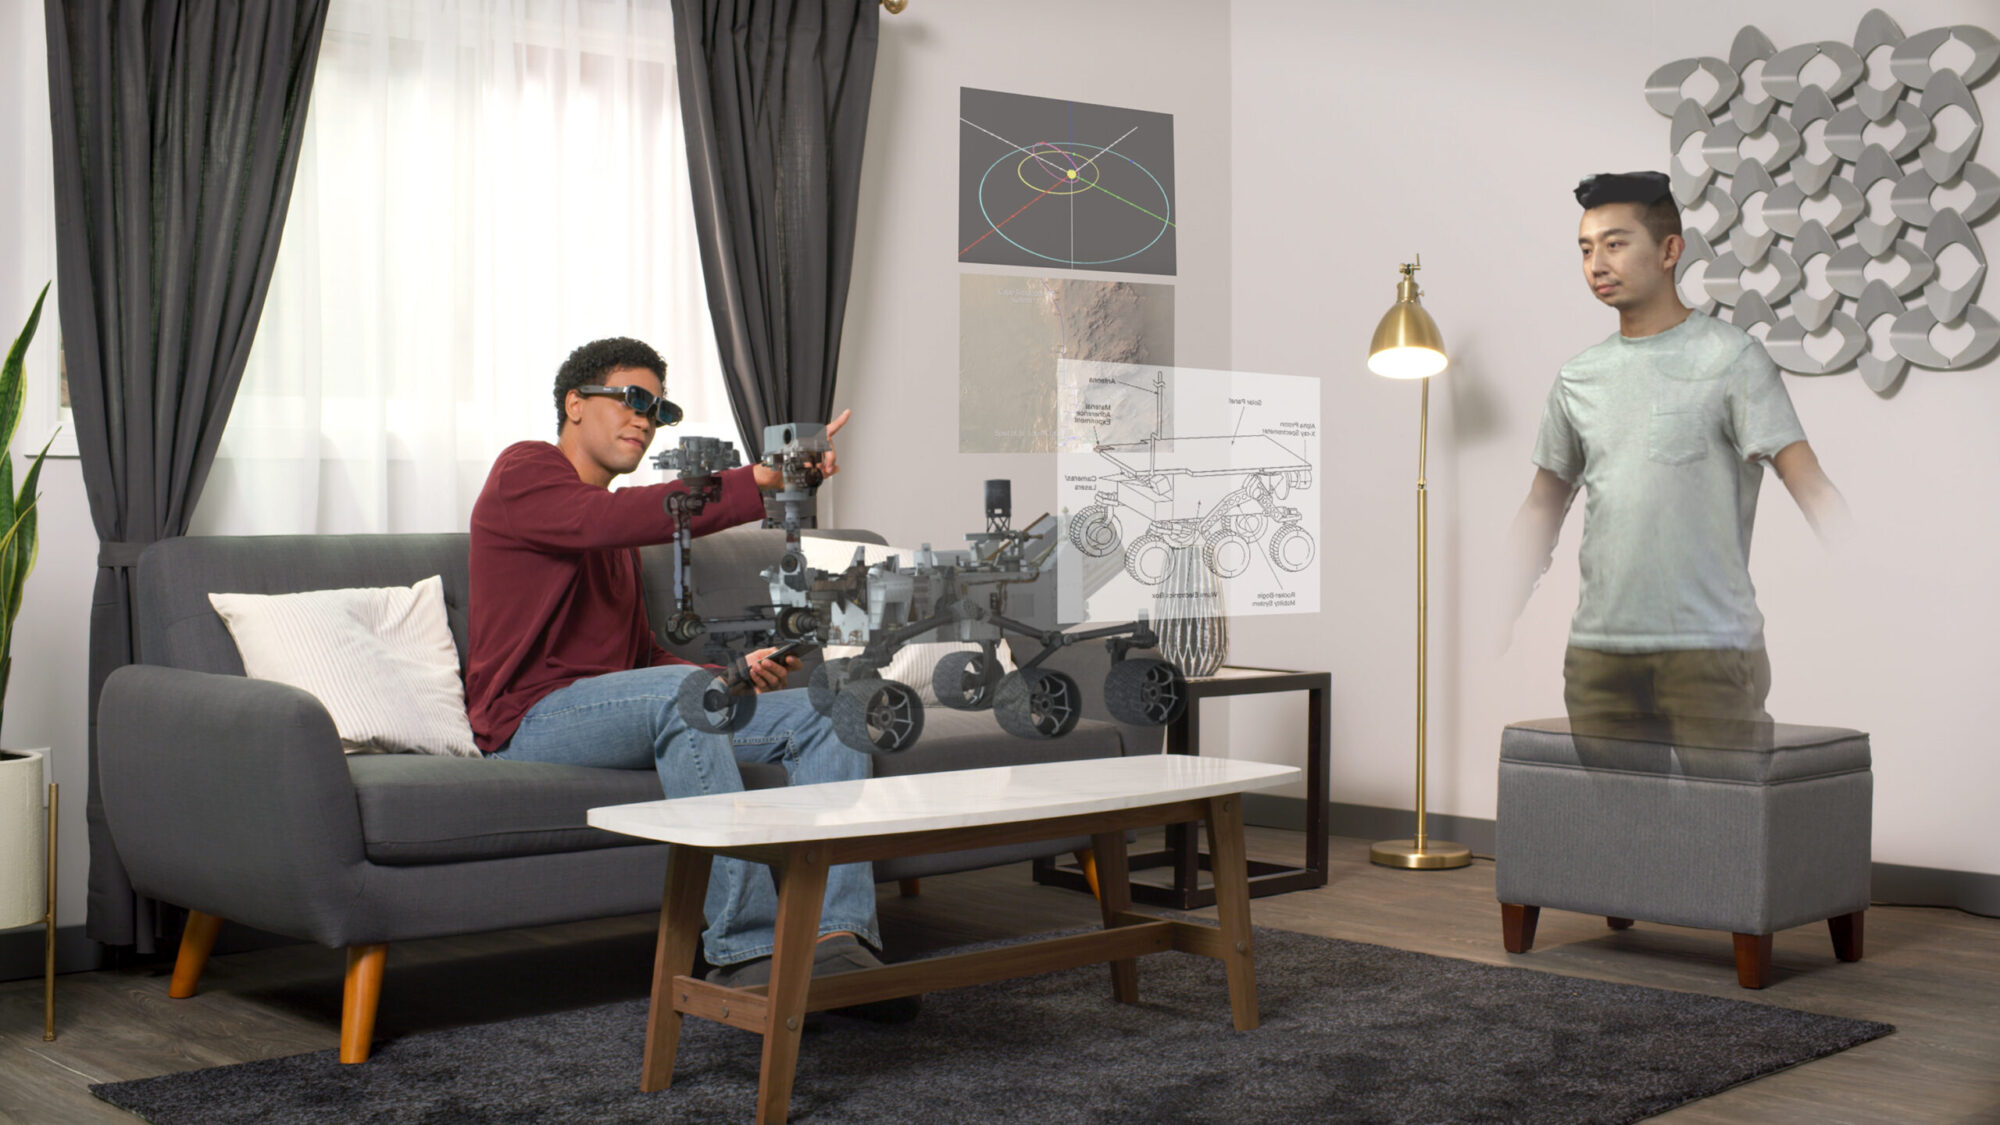 Qualcomm unveils latest augmented reality design for XR1 AR Smart Viewer